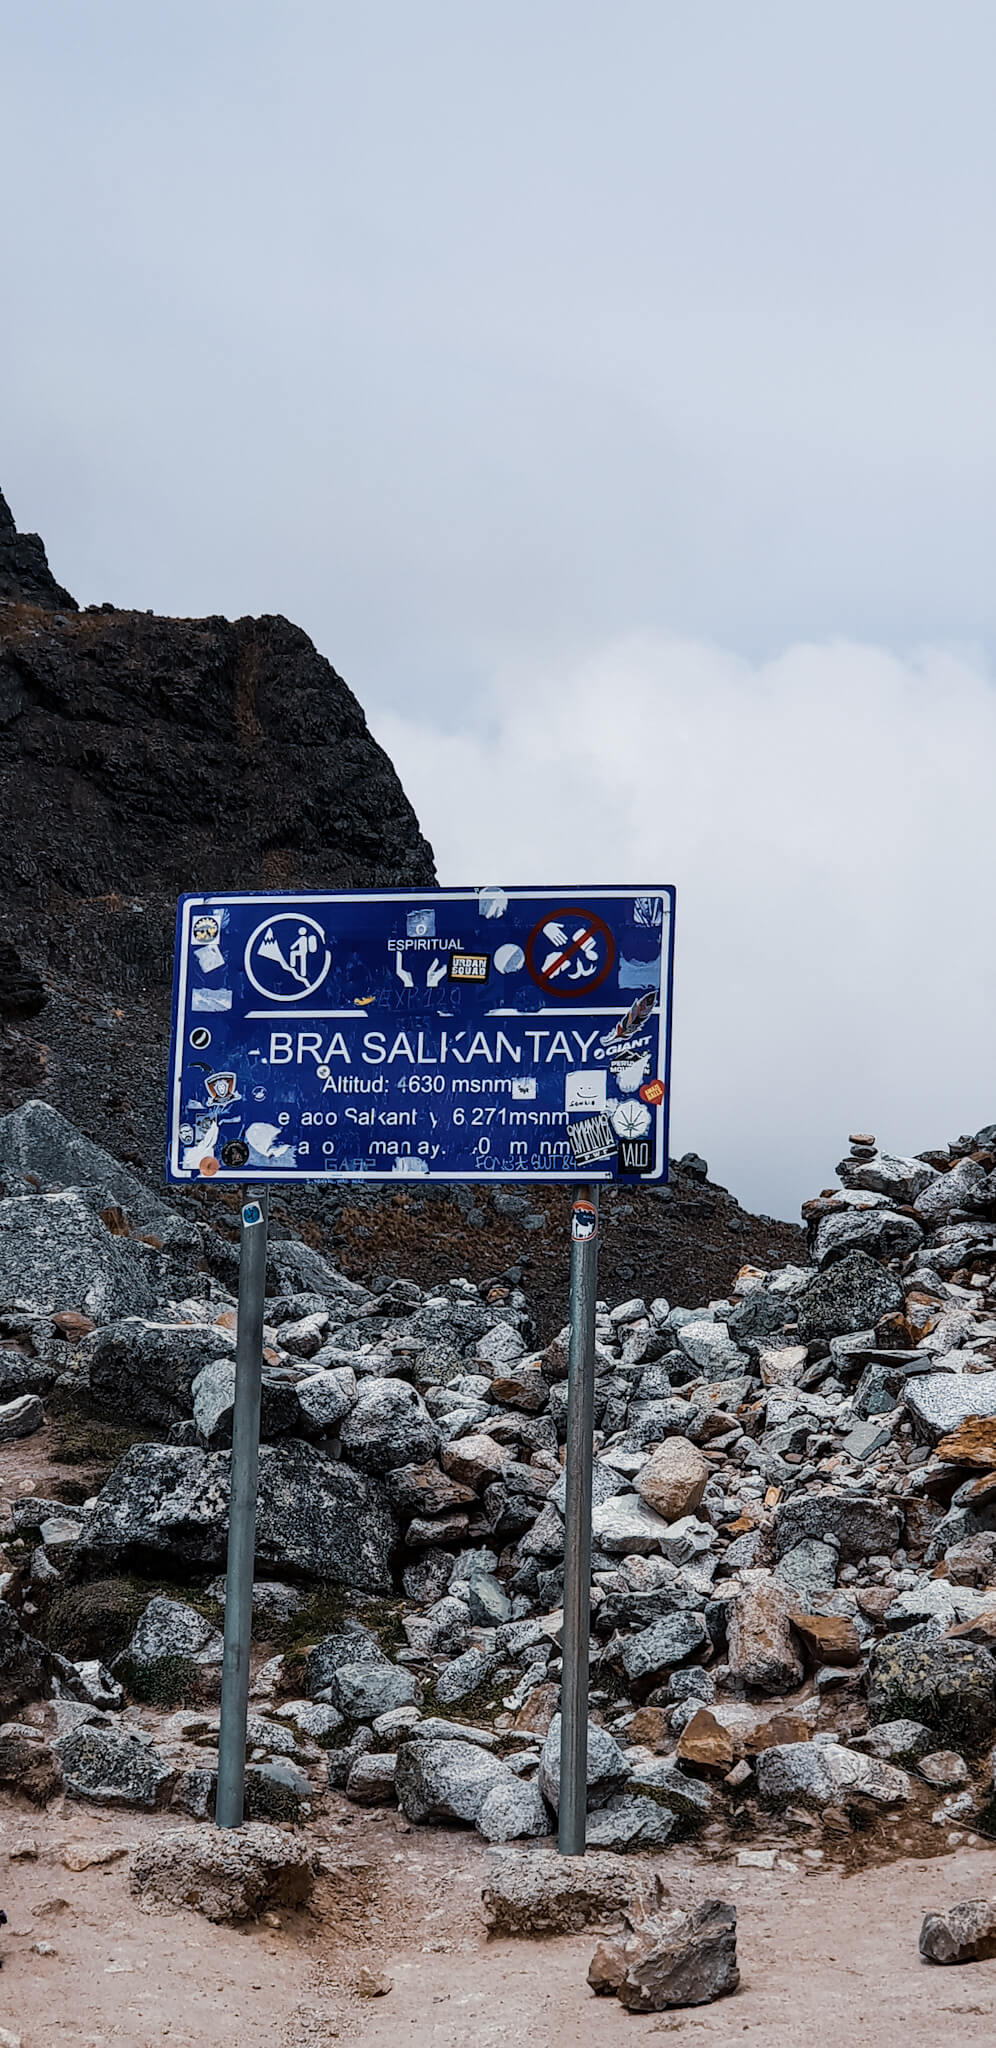 Salkantay Mountain Peak